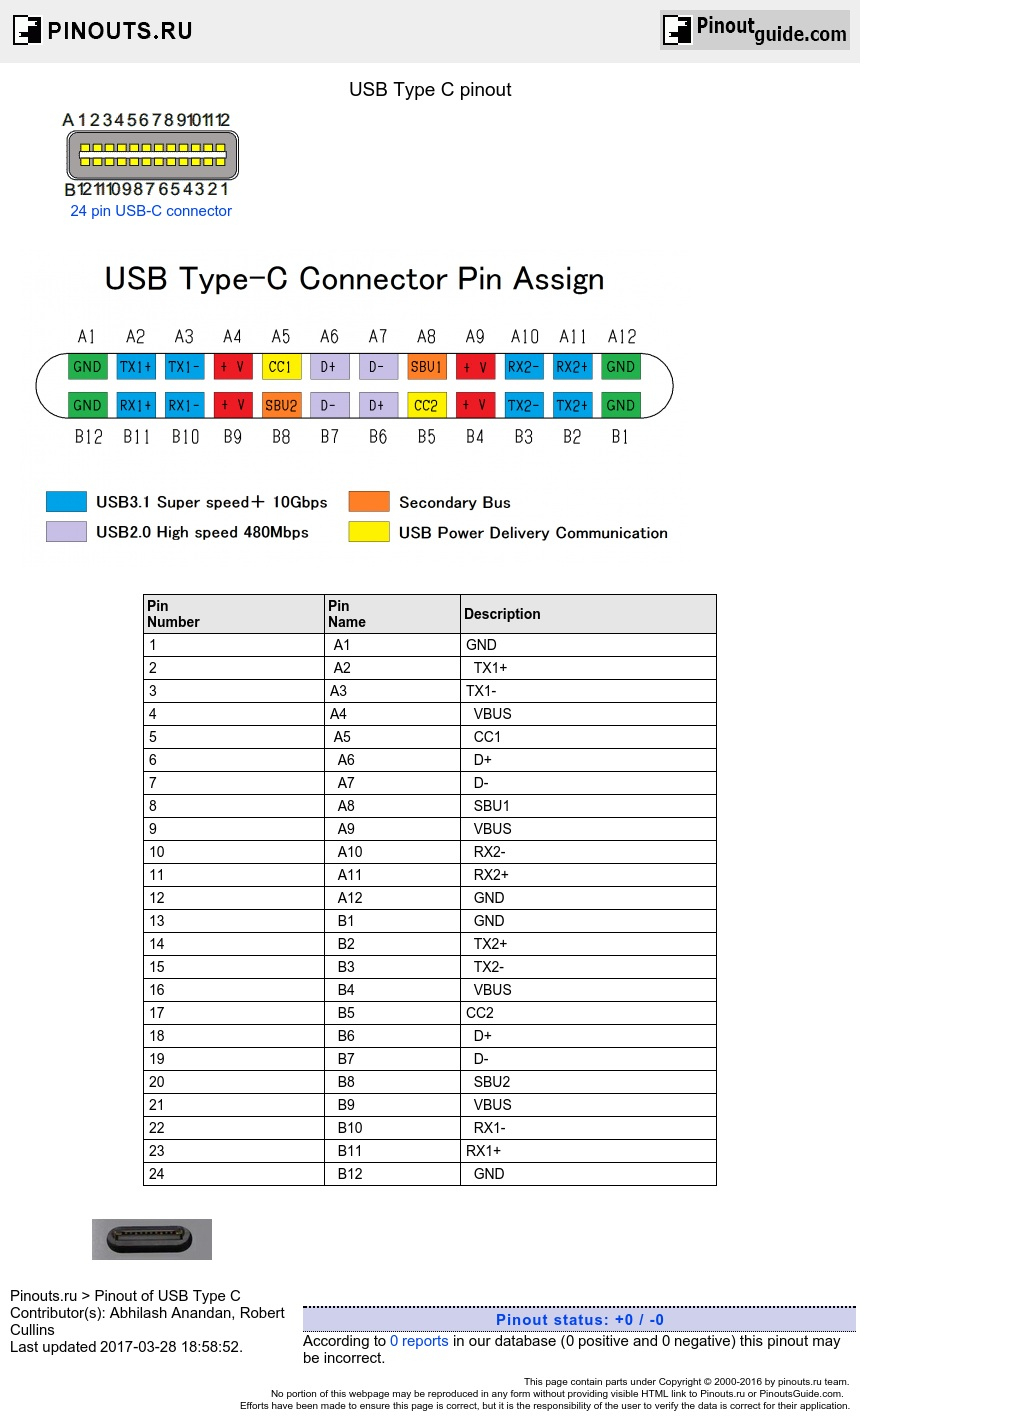 Usb Type C Pinout Diagram @ Pinoutguide - Usb Type C Cable Wiring Diagram